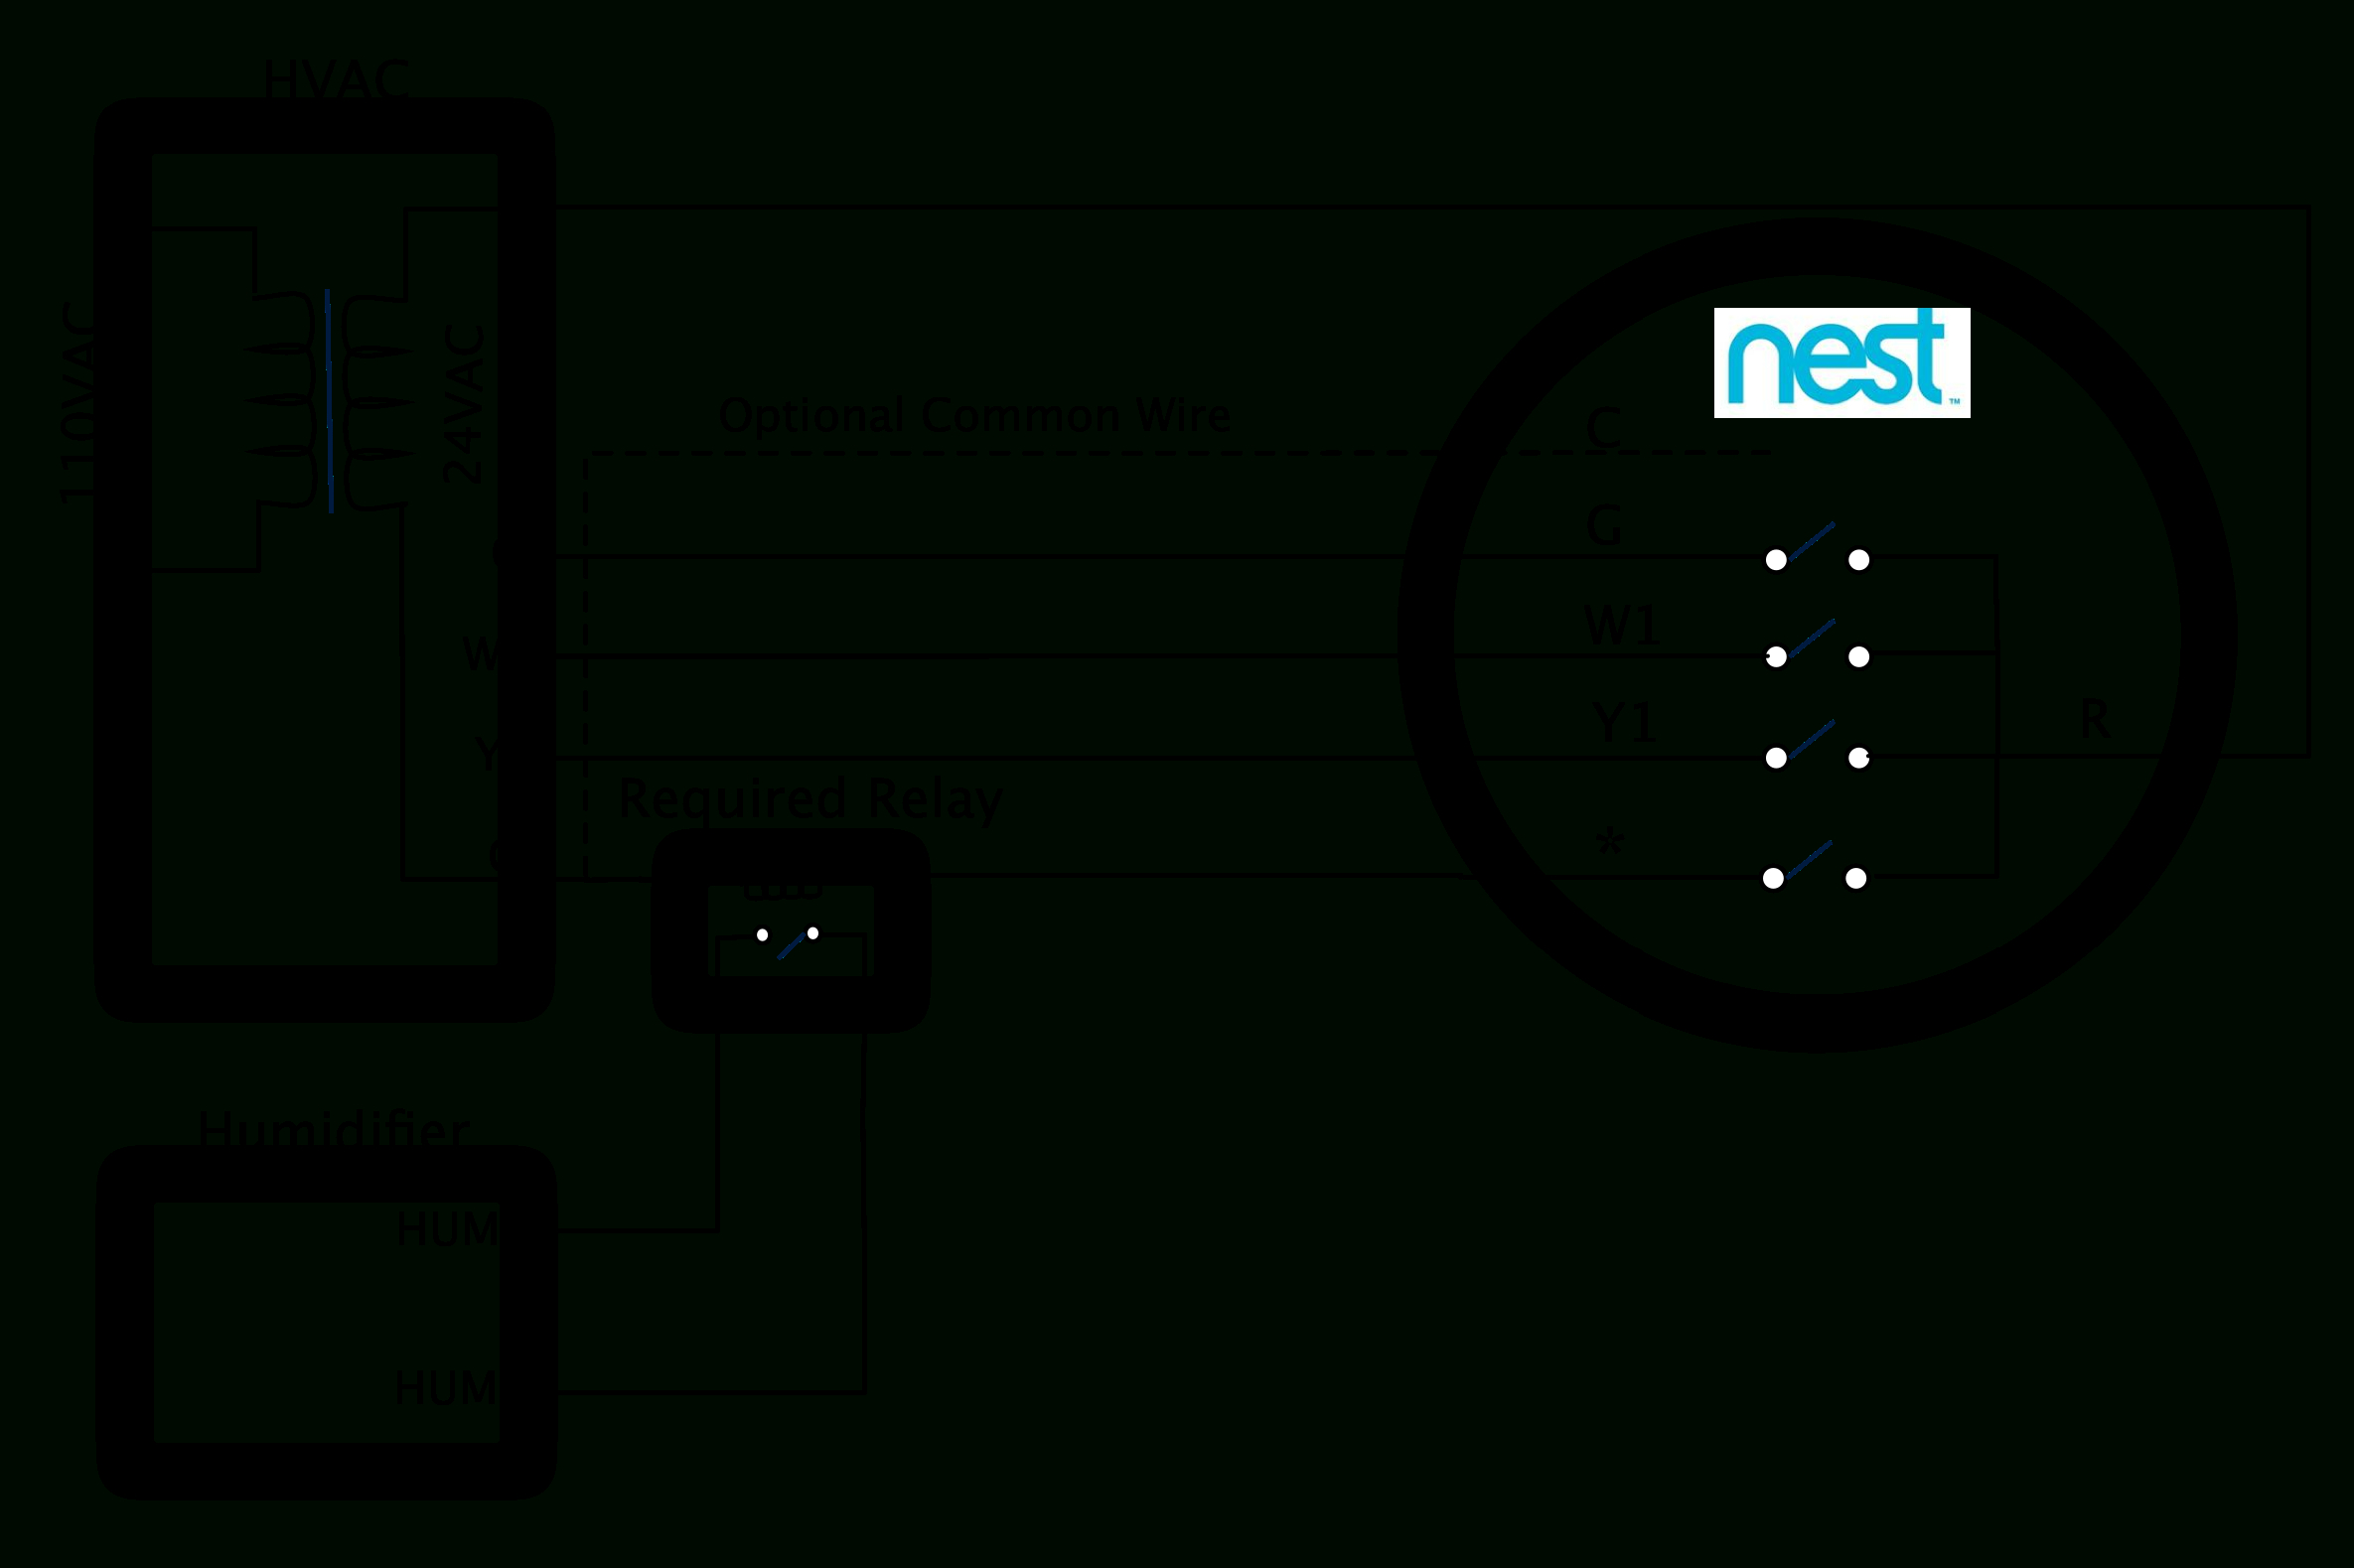 Nest T Stat Wiring Diagram | Wiring Diagram - Nest Wiring Diagram Helper